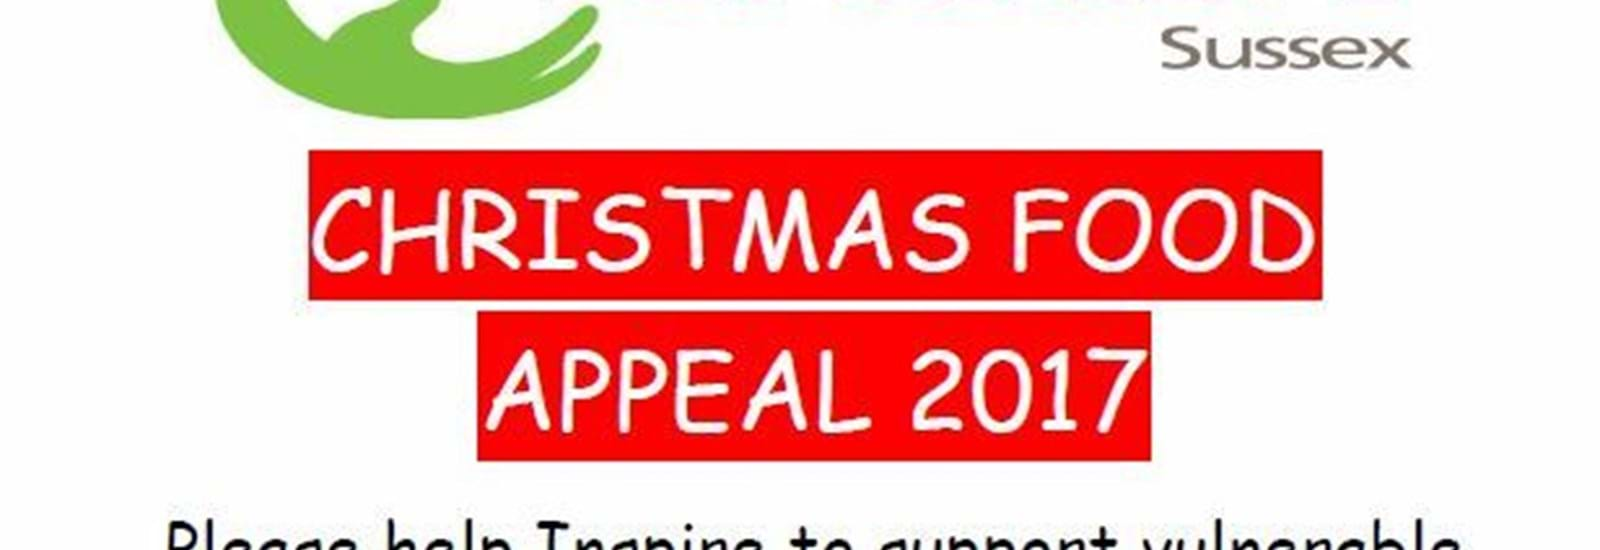 Banner for Christmas Food Appeal 2017